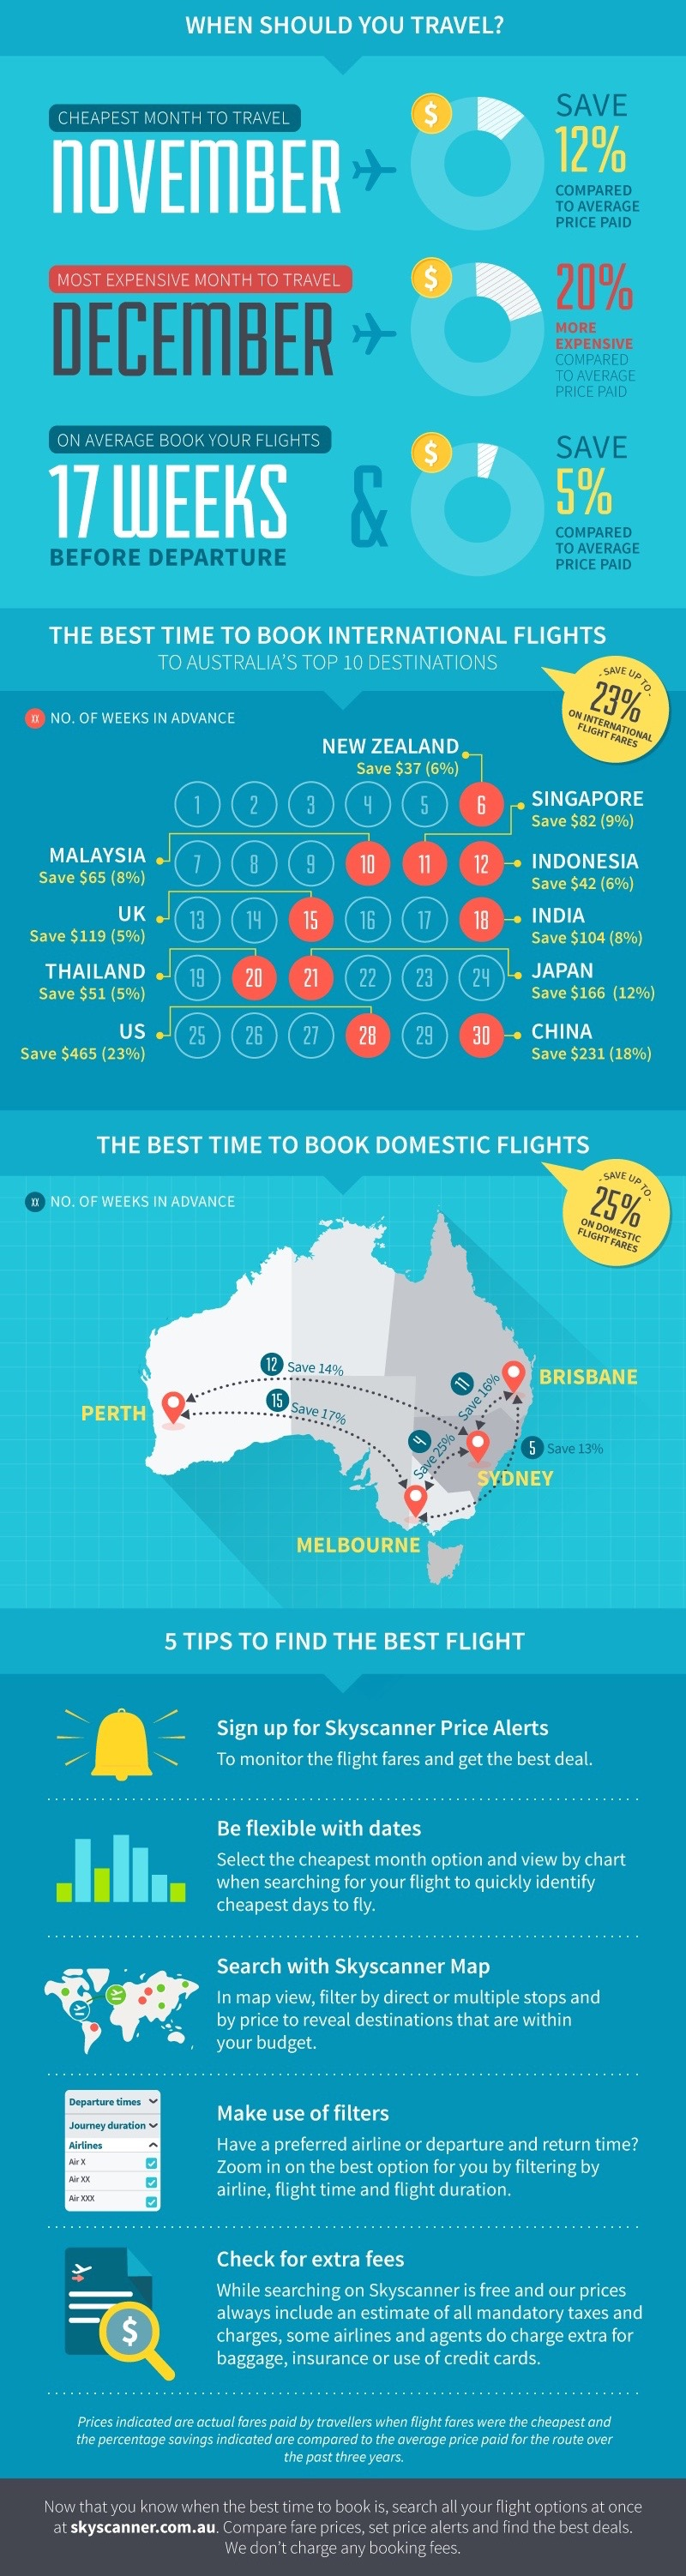 Skyscanner-Best-Time-To-Book-Featured-Image (2)